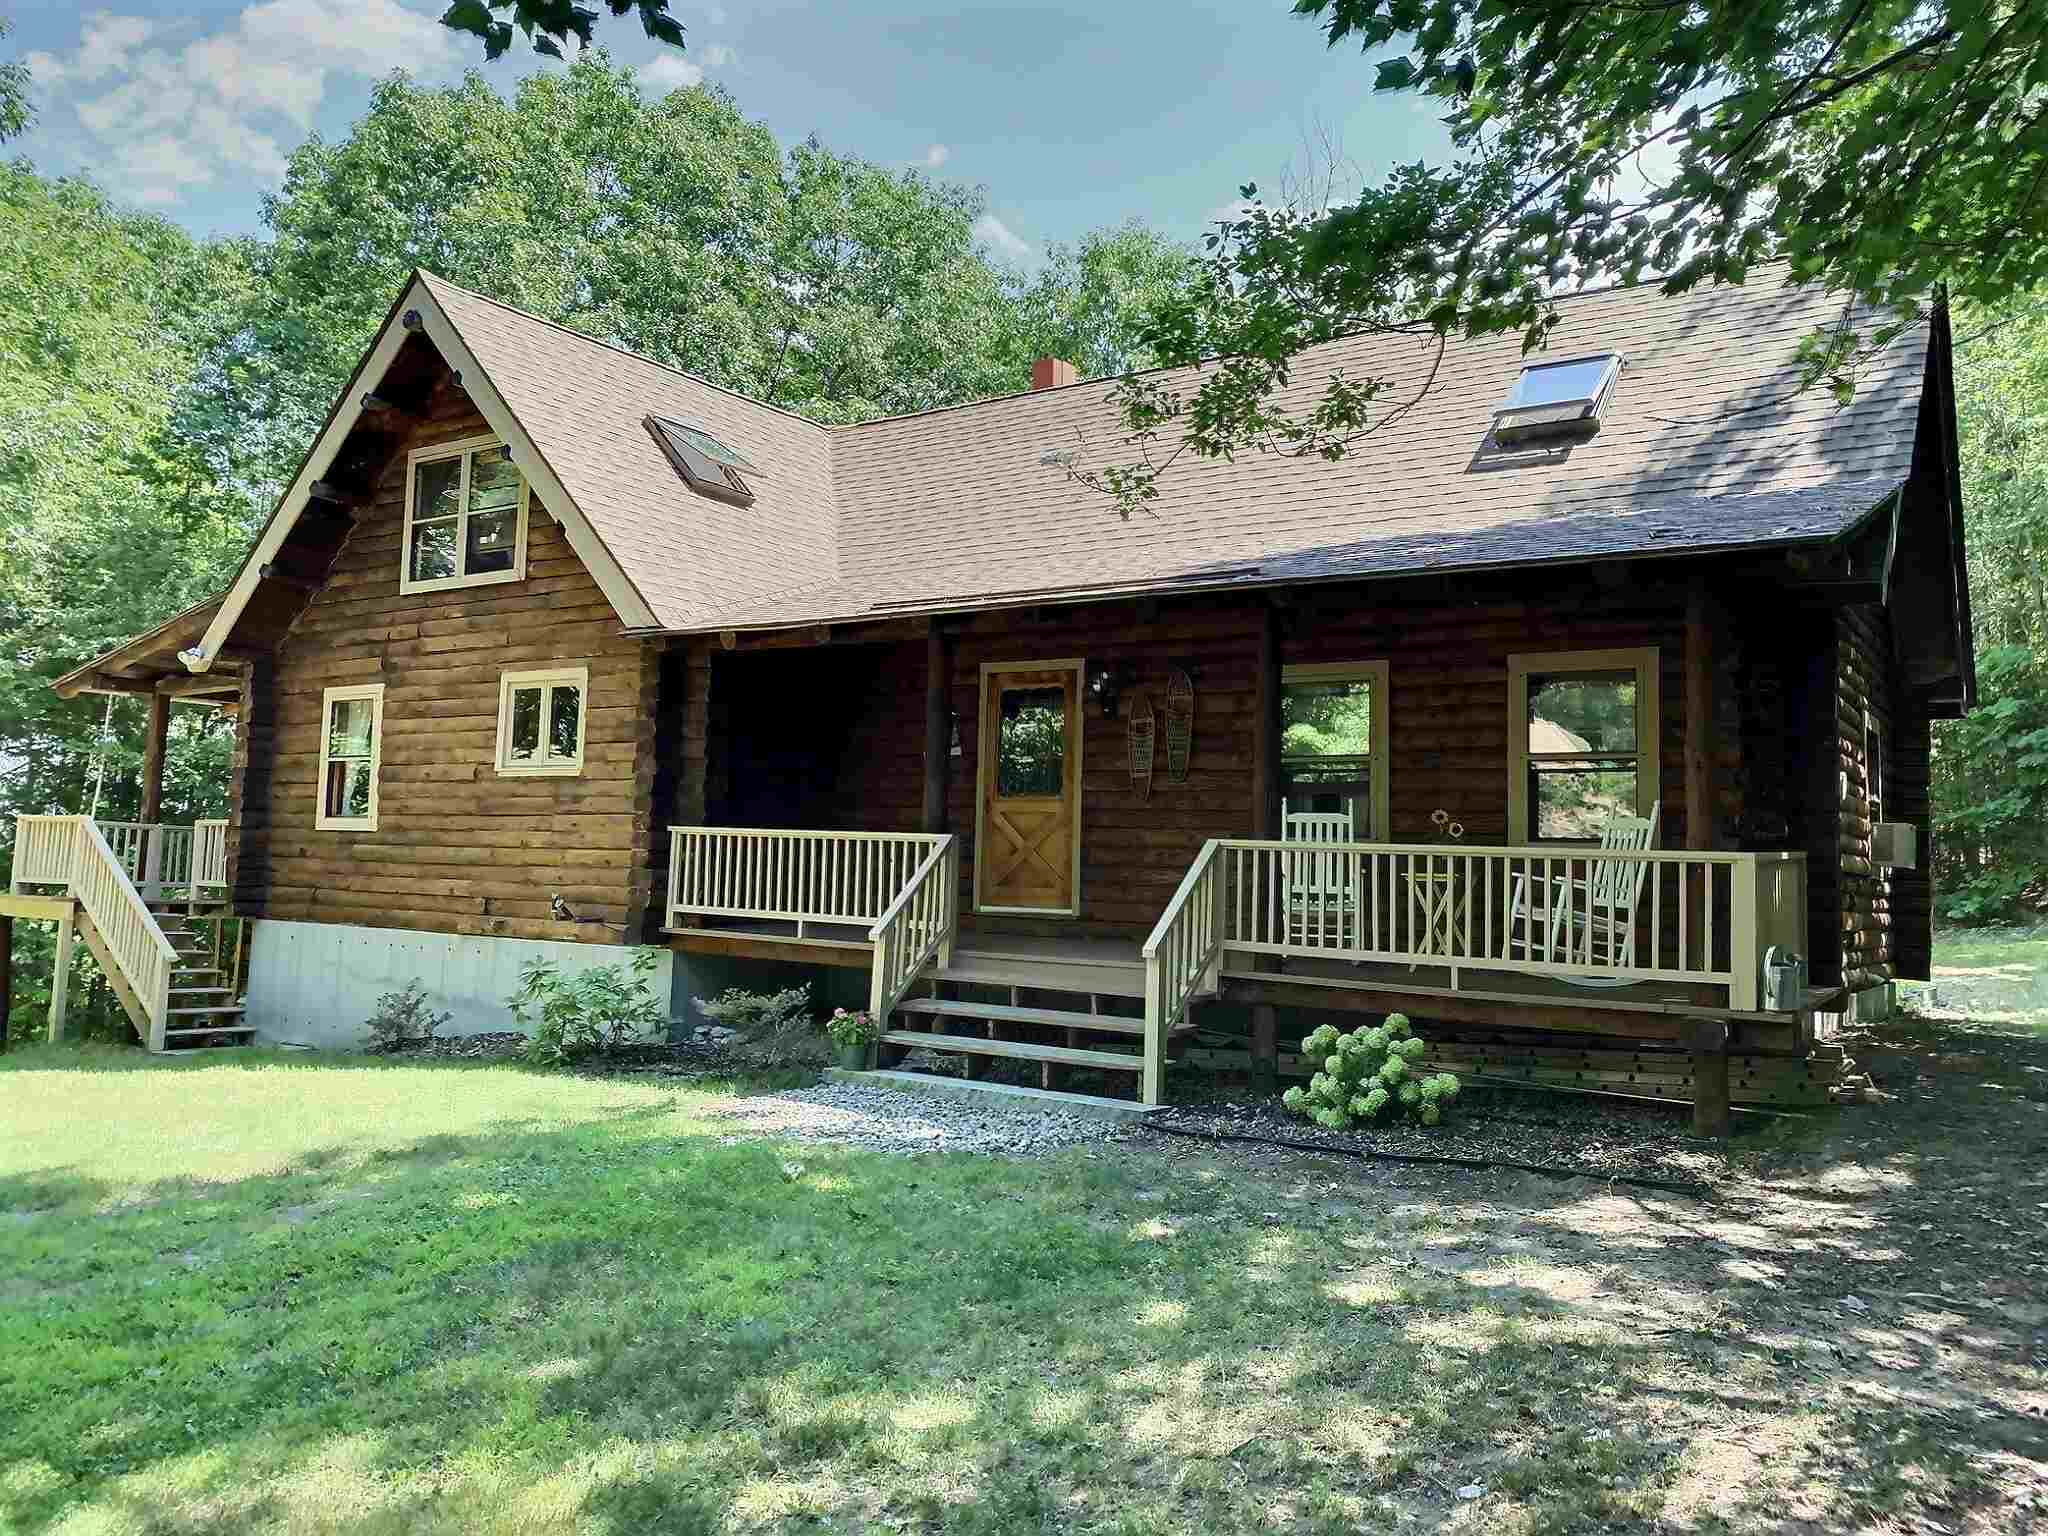 MLS 4819700: 314 Cross Hill Road, Wilmot NH